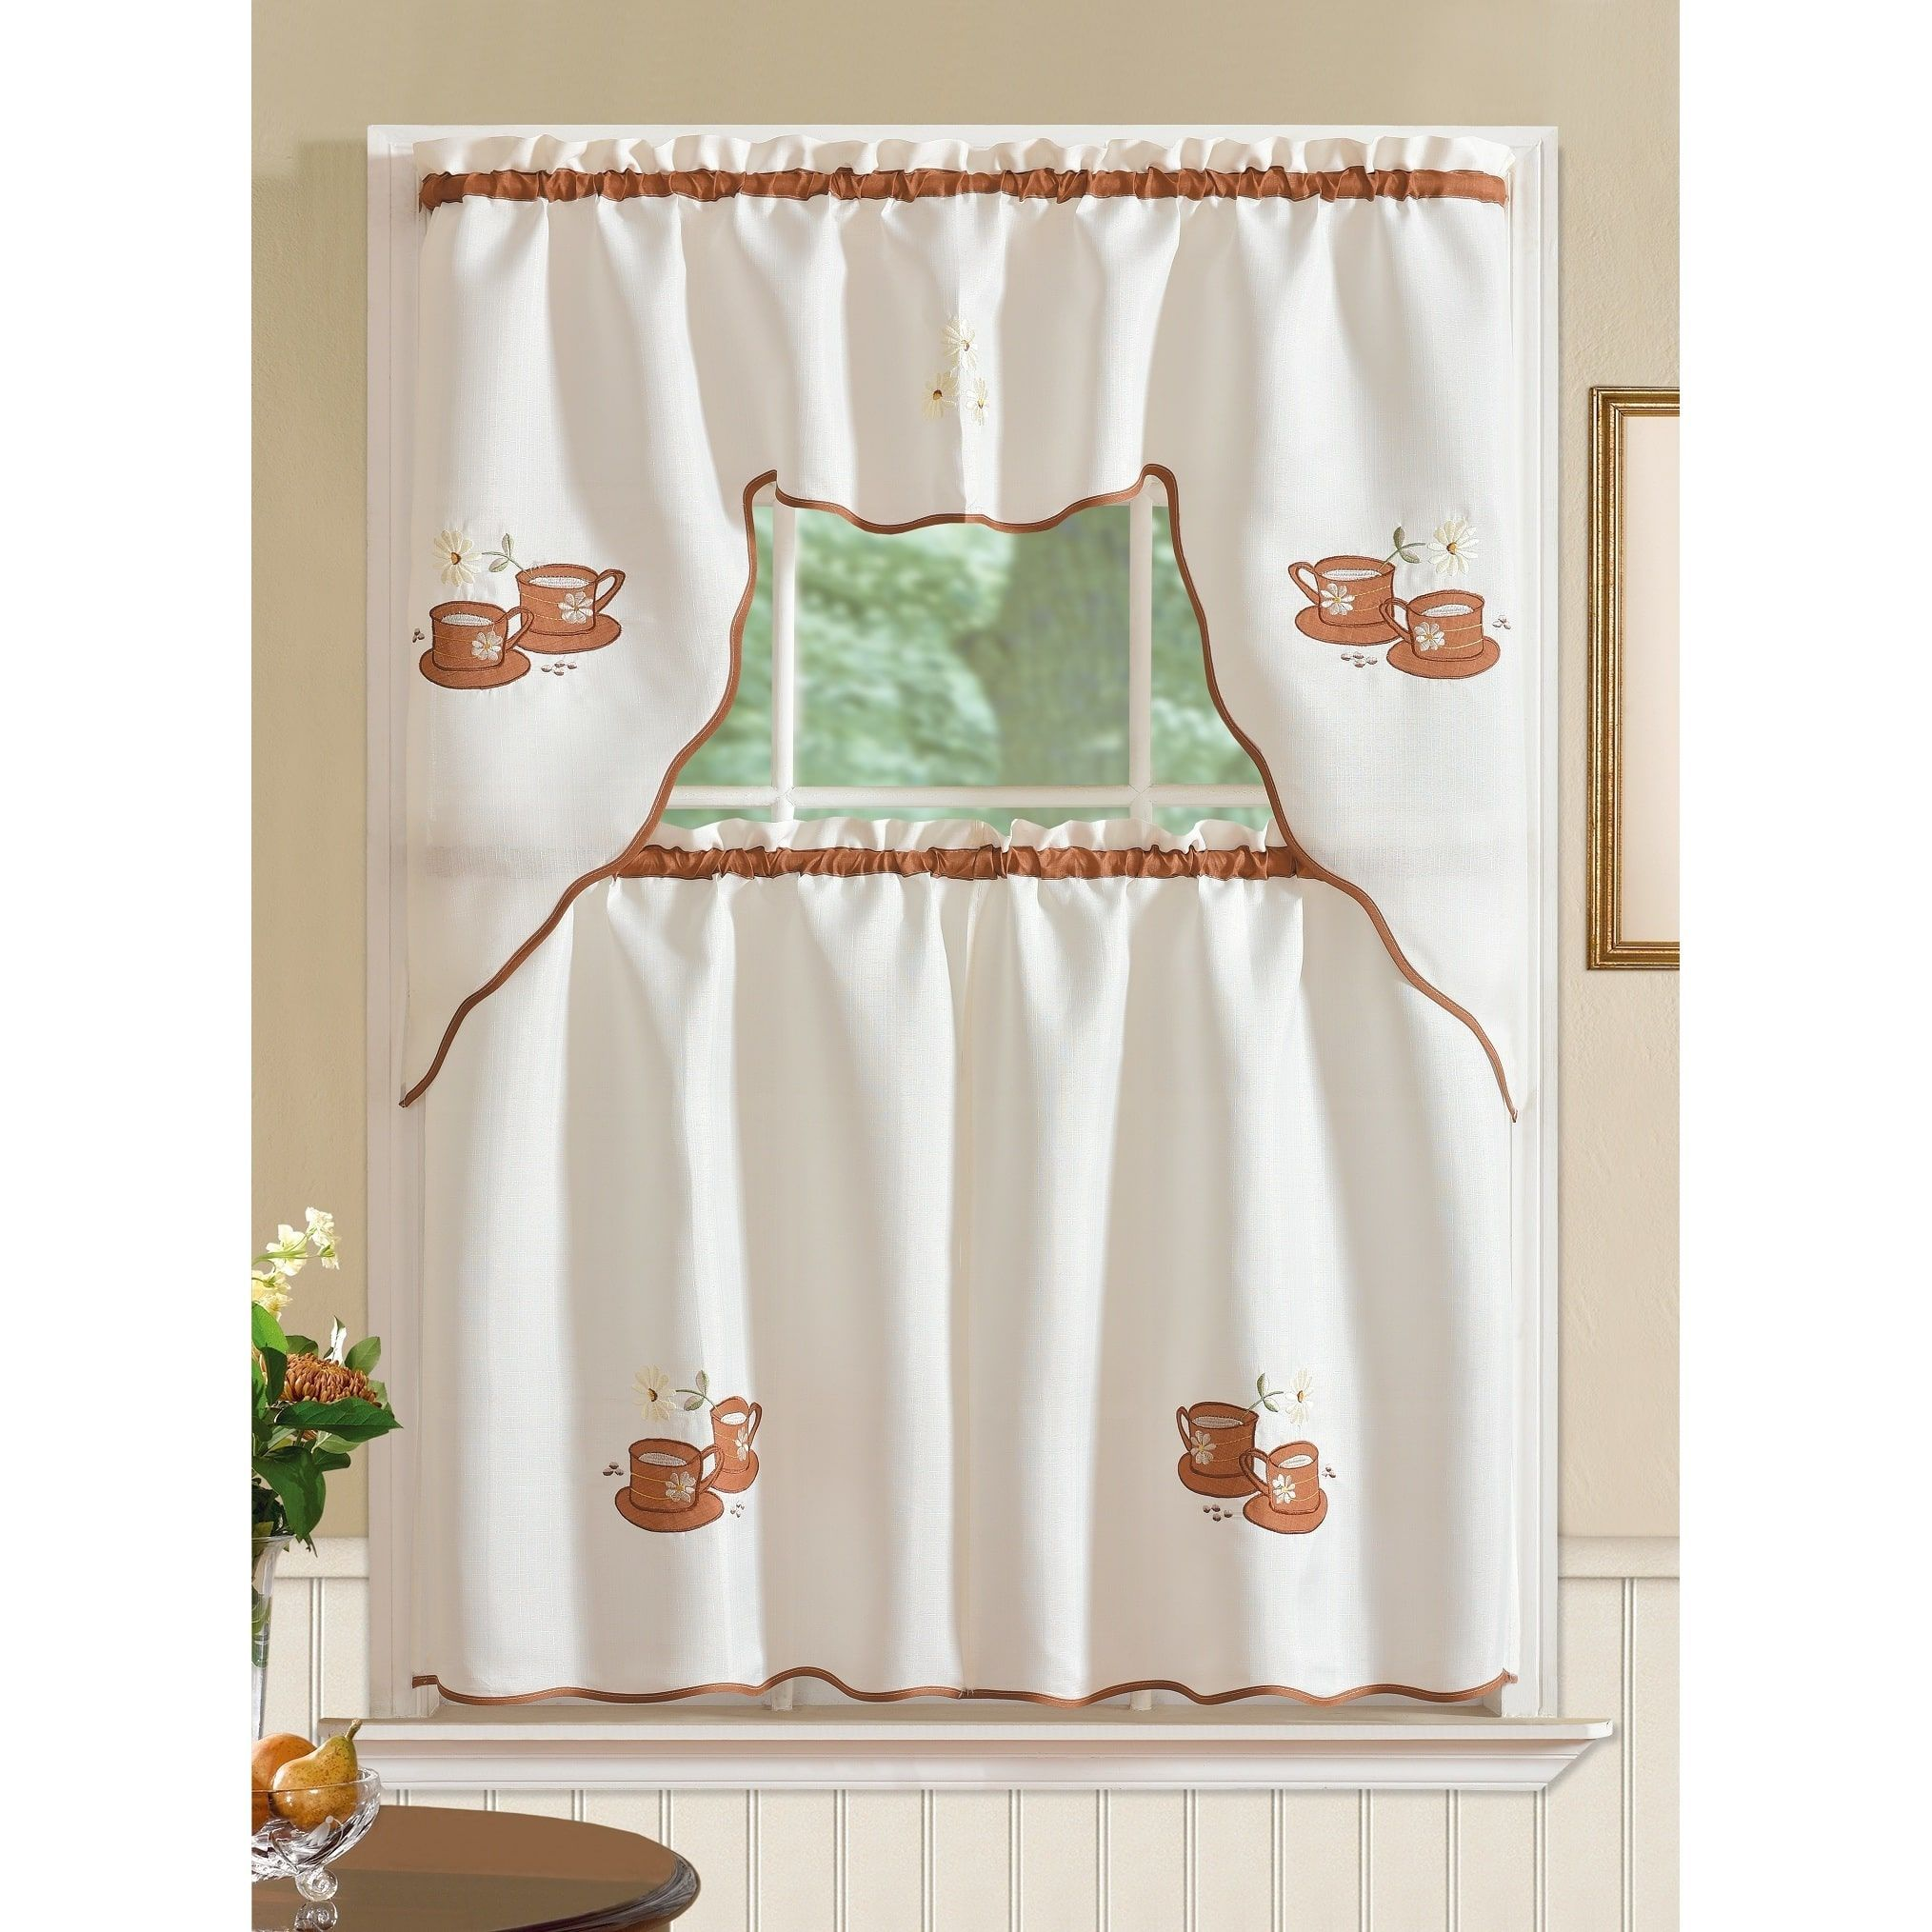 Rt Designer S Collection Imperial Coffee Jacquard Tier And Valance Kitchen Curtain Set Coffee White Brown Multicolor Rt Desig Kitchen Curtain Sets Custom Drapes Kitchen Curtains